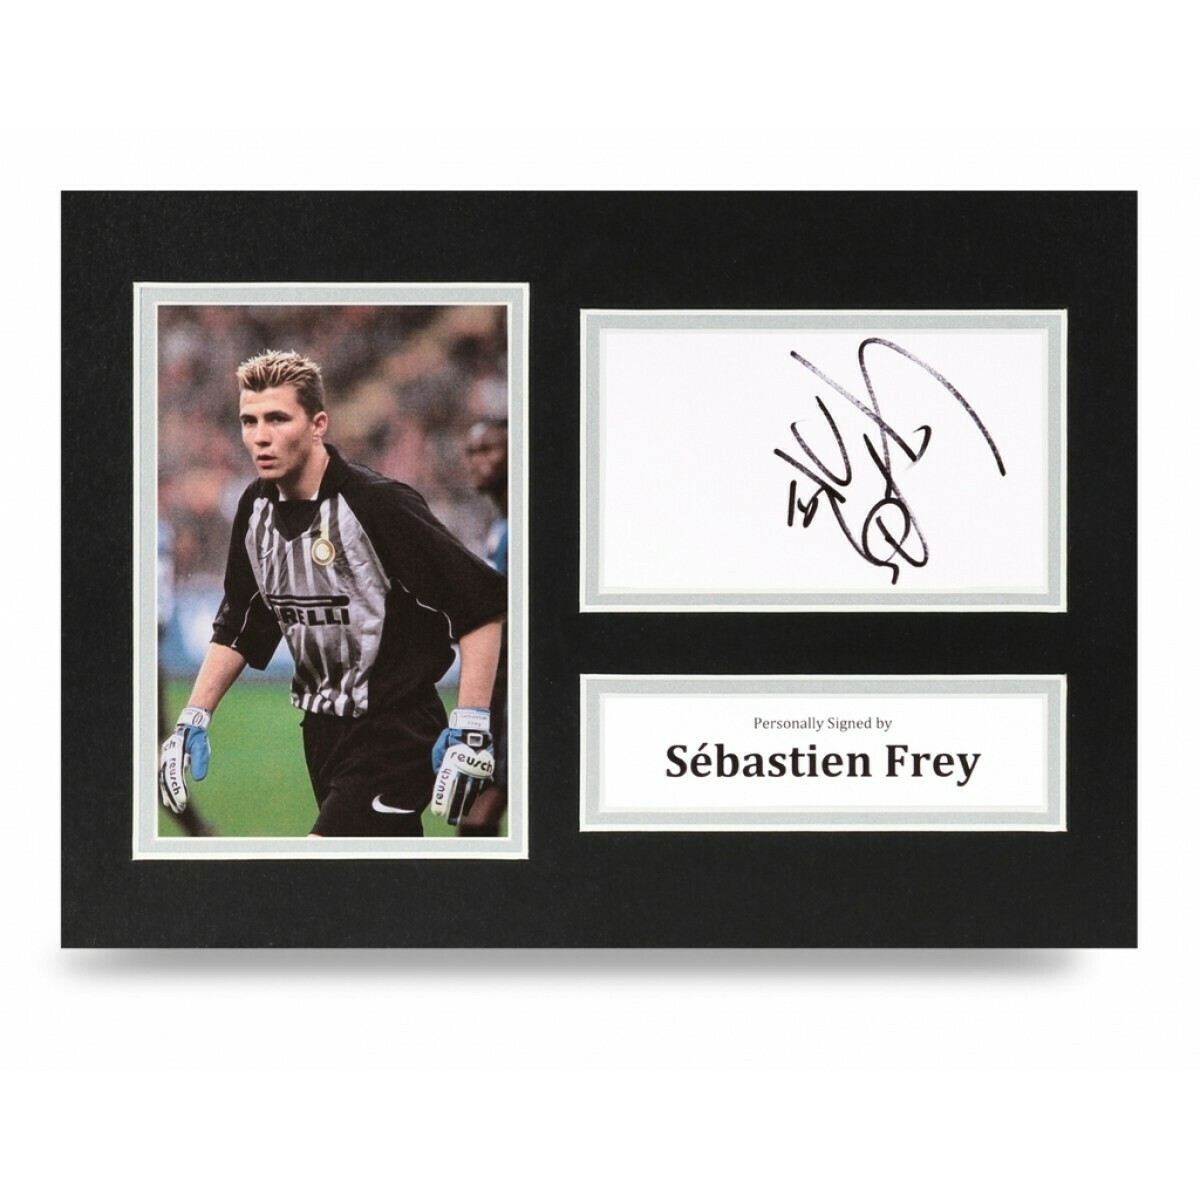 SEBASTIAN FREY INTER  DISPLAY  AUTOGRAFATA SIGNED AUTOGRAPH SIGNED FREY PHOTO SIGNED INTER SEBASTIAN FREY Formato A4